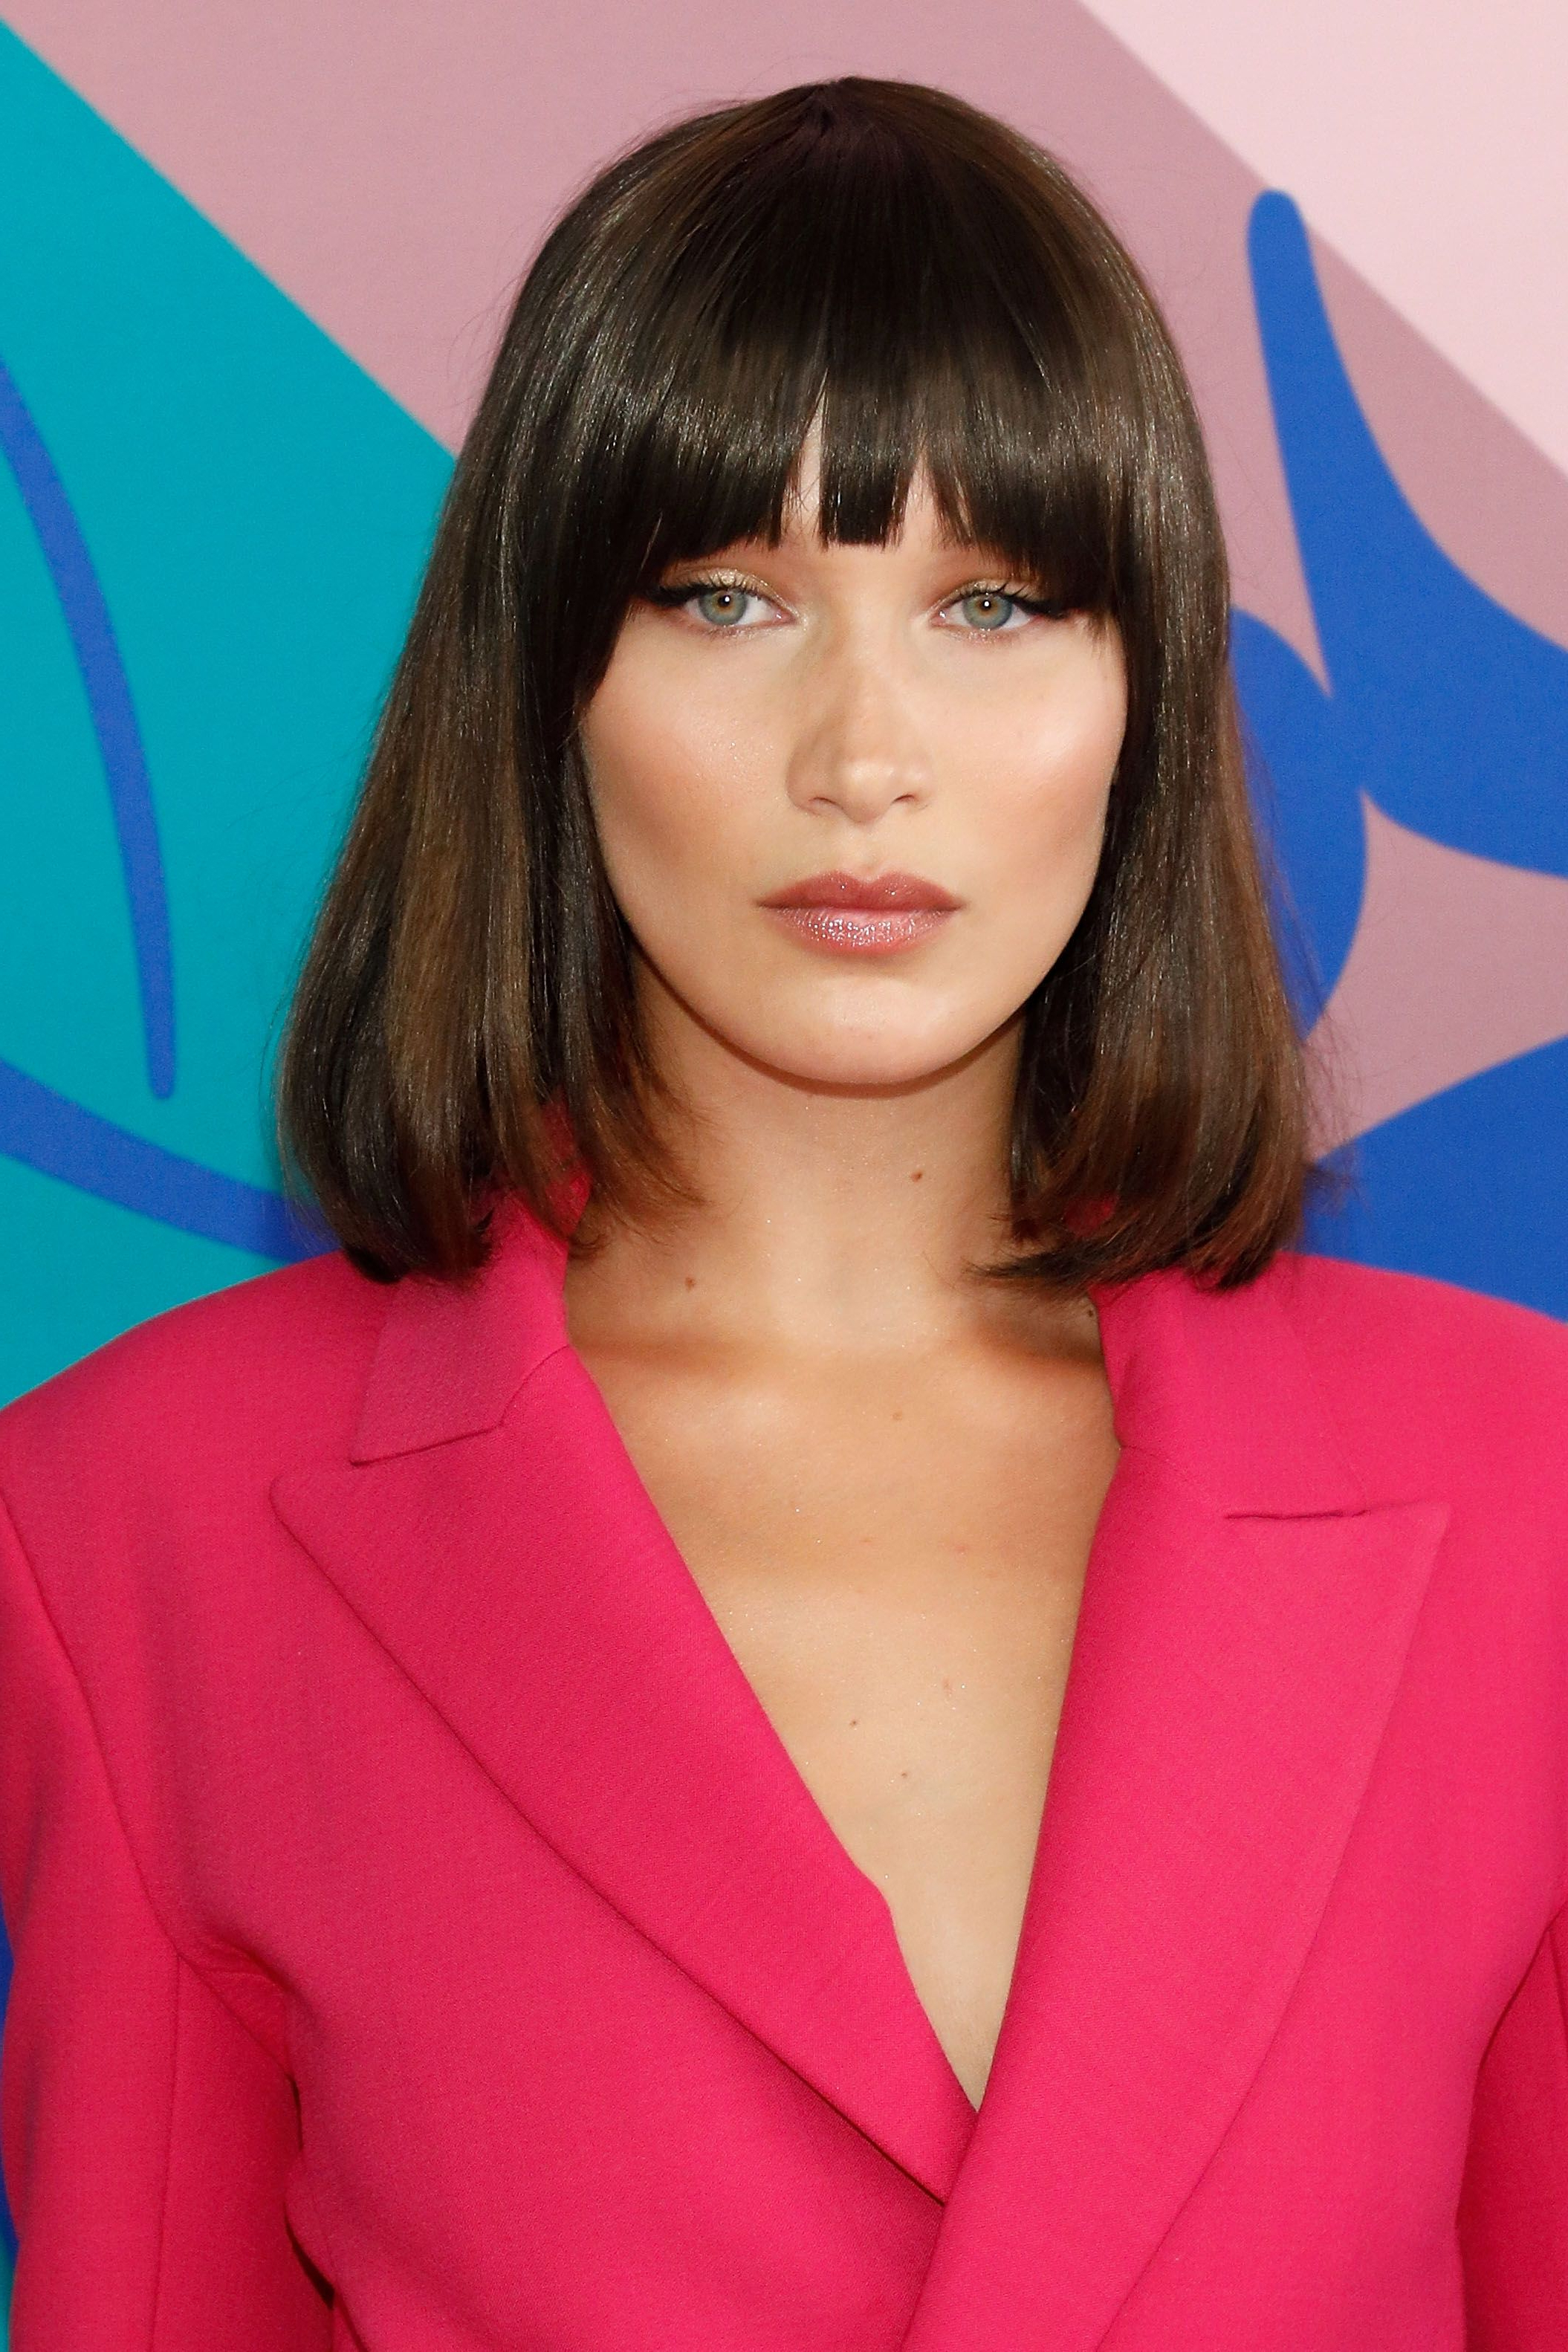 Well Known Low Key Curtain Bangs Hairstyles Intended For 16 Hairstyles With Bangs – Bangs For Face Shape (Gallery 15 of 20)